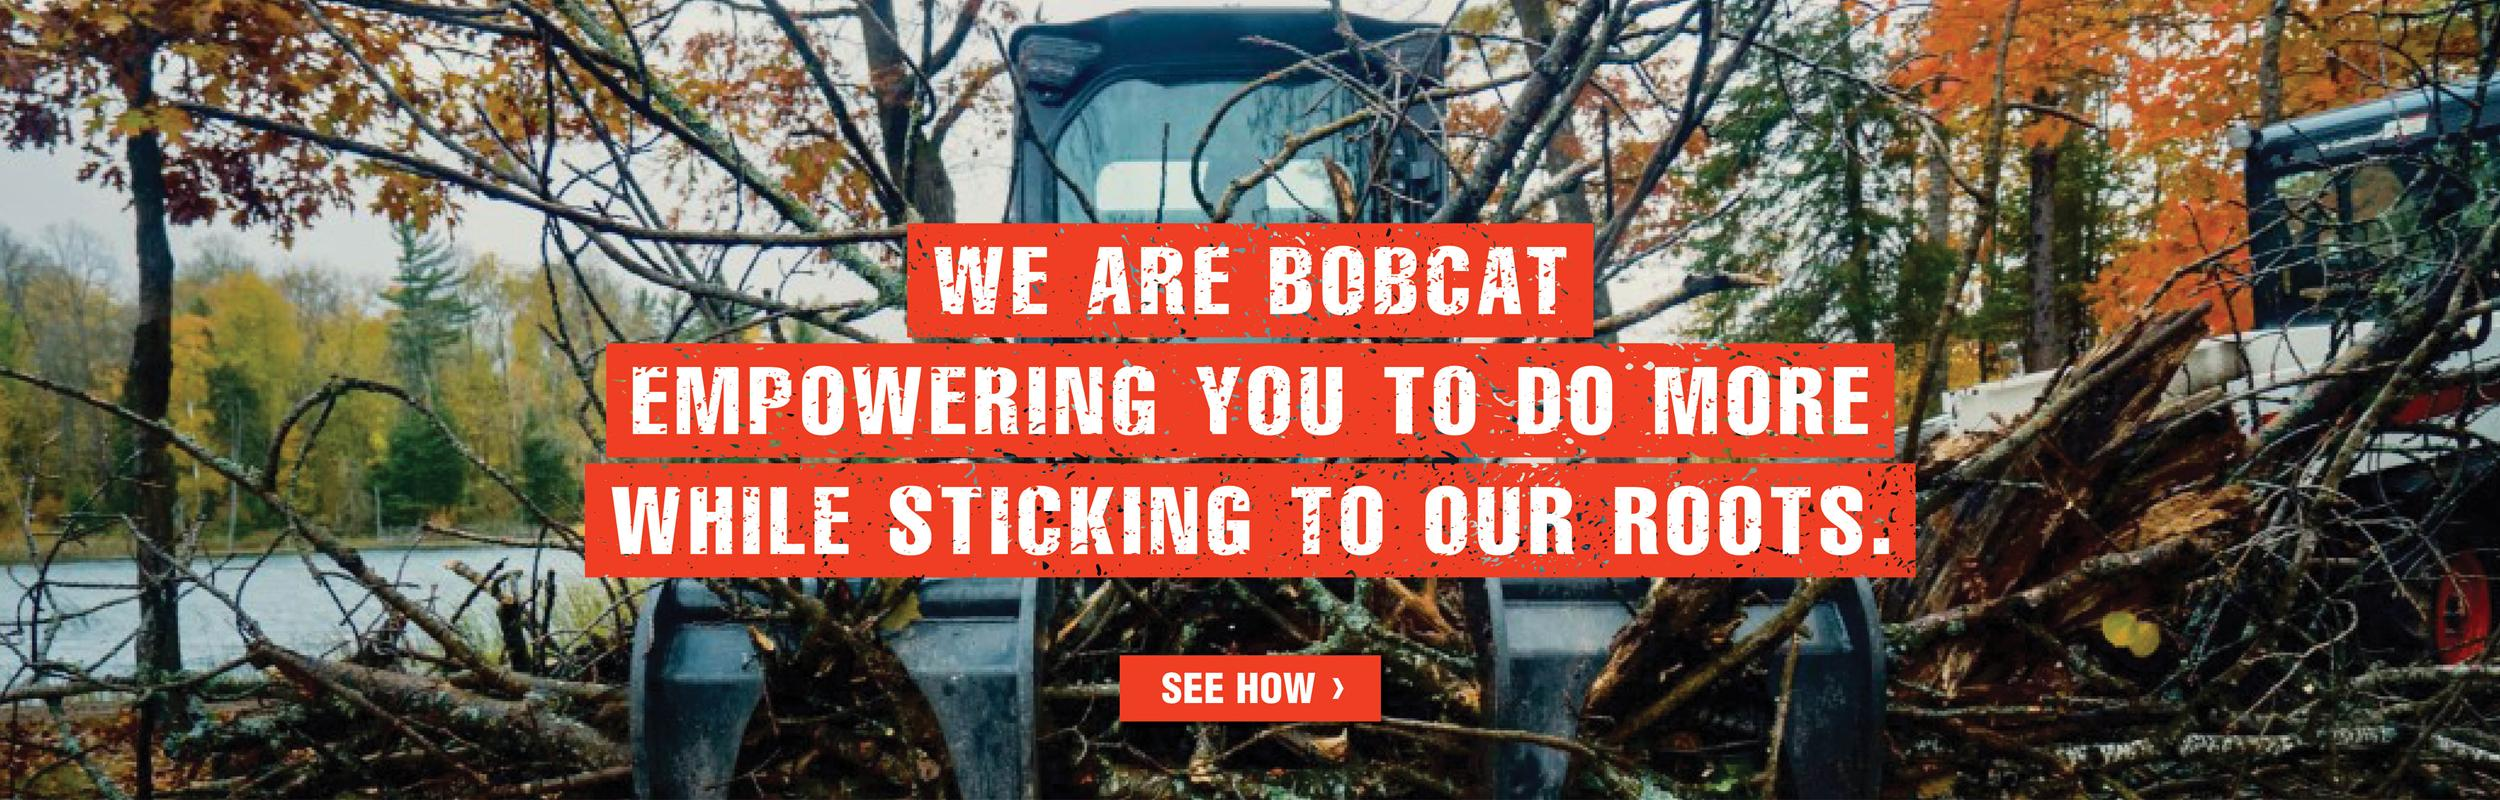 Bobcat Loader With Grapple Attachment Clearing Brush With Text Overlay We Are Bobcat. Empowering You To Do More While Sticking To Our Roots